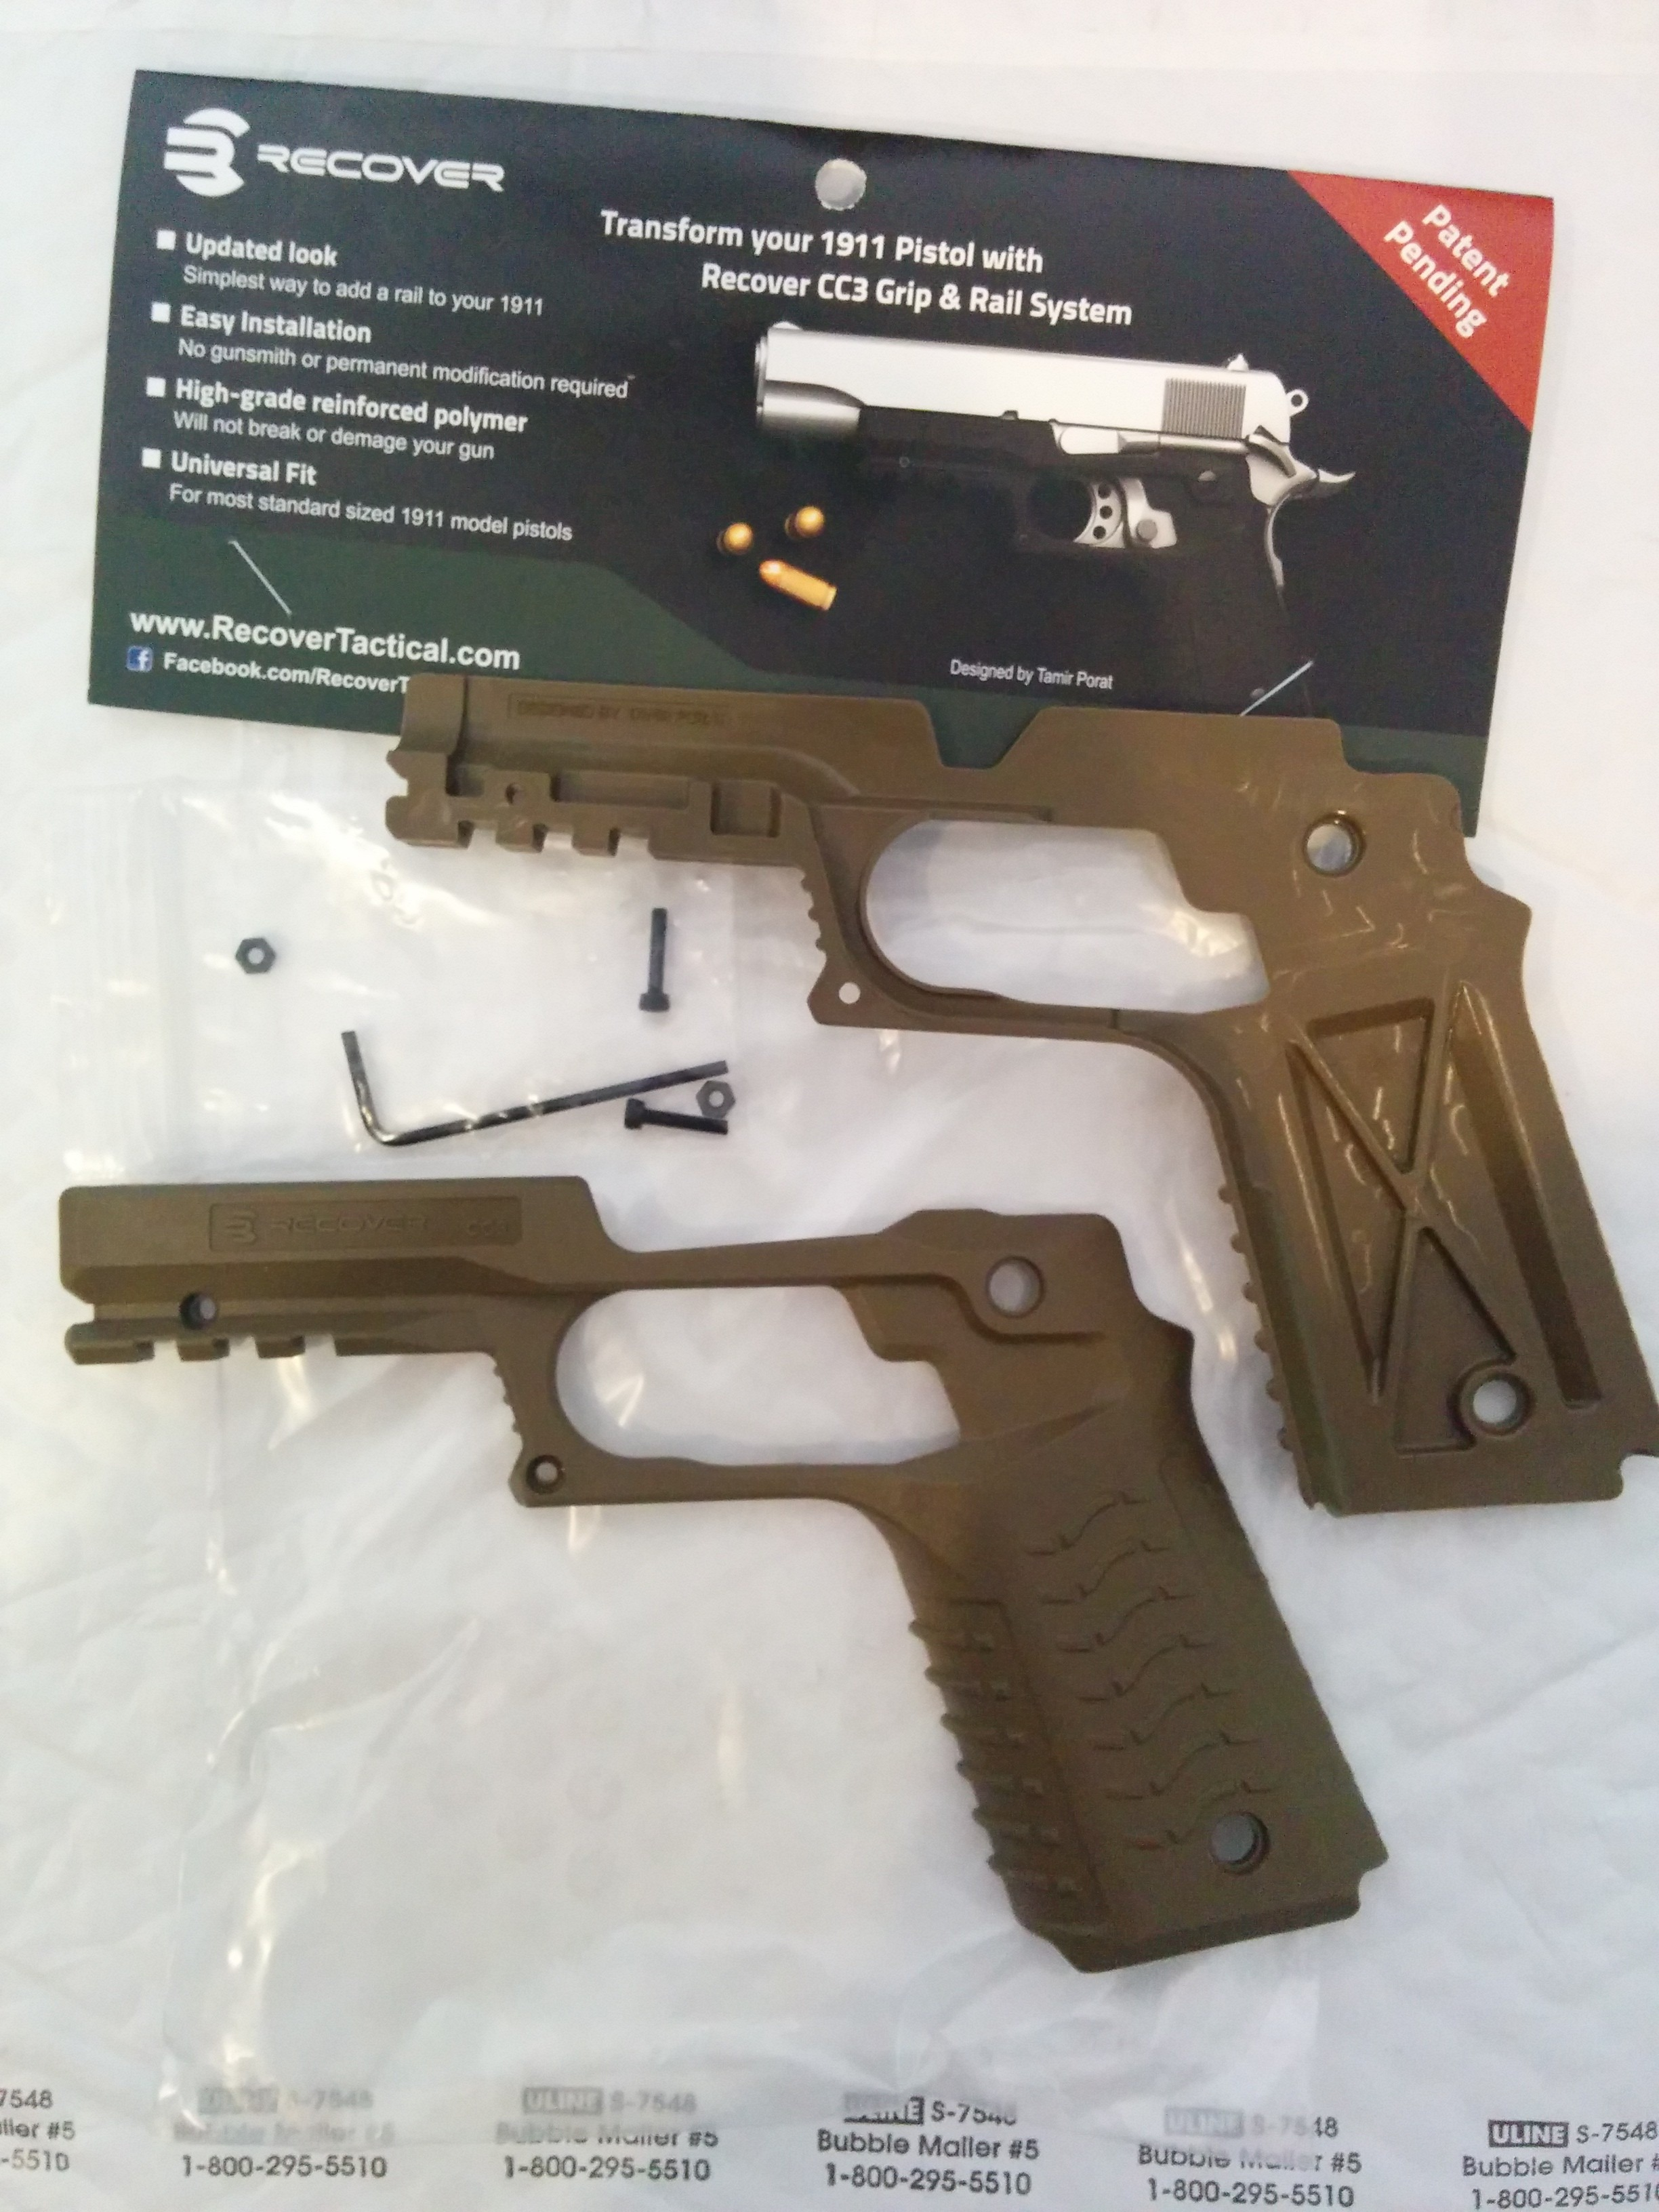 Review: Recover Tactical - Recover 1911 Grip & Rail System